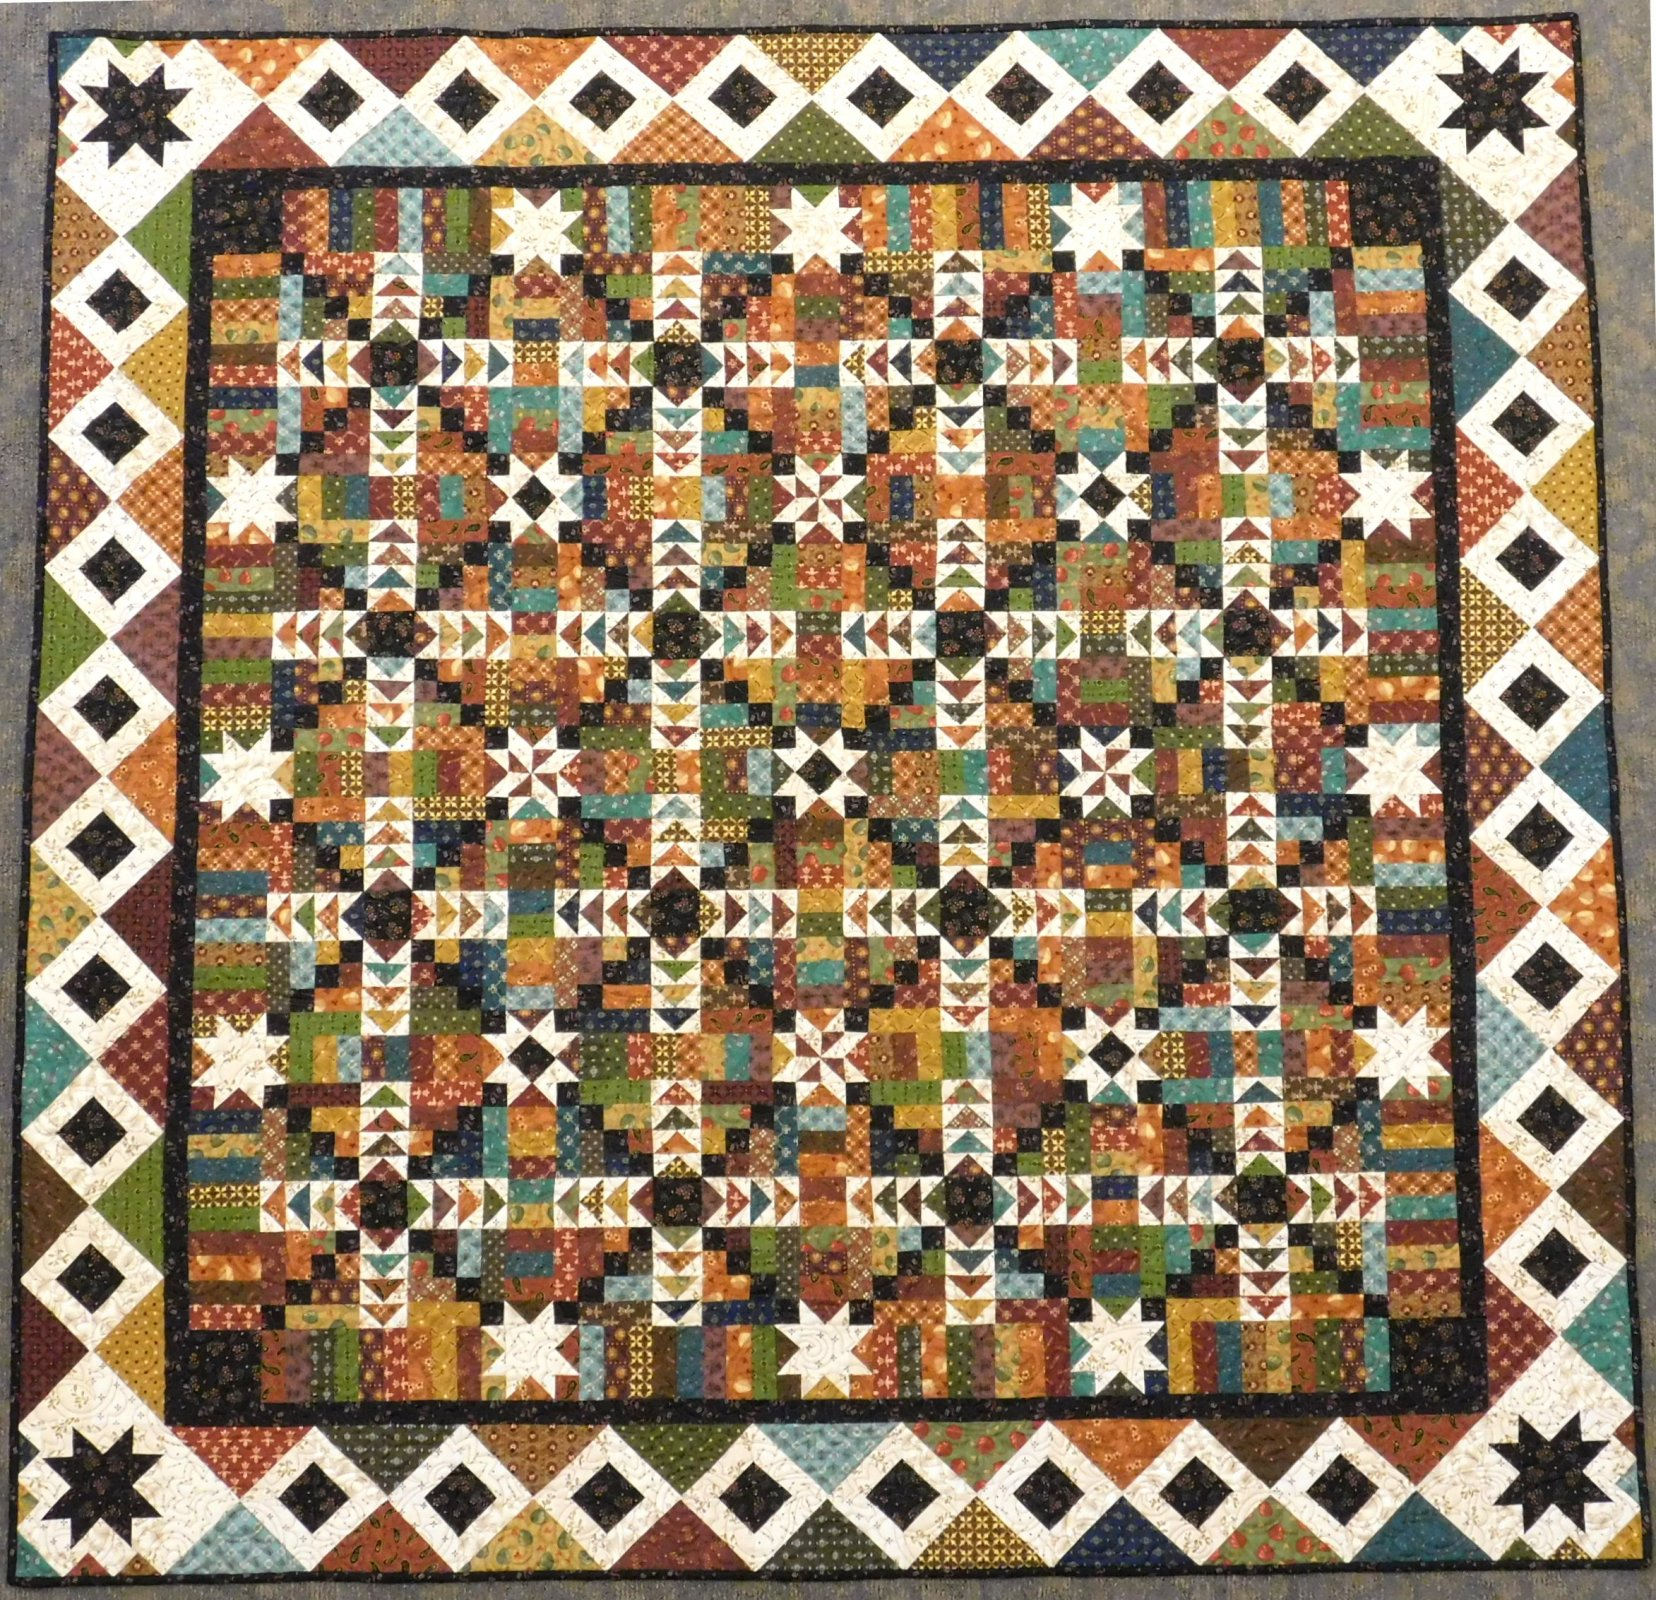 Geese on the Meadow by Kim Diehl - Block of the Month Block 1